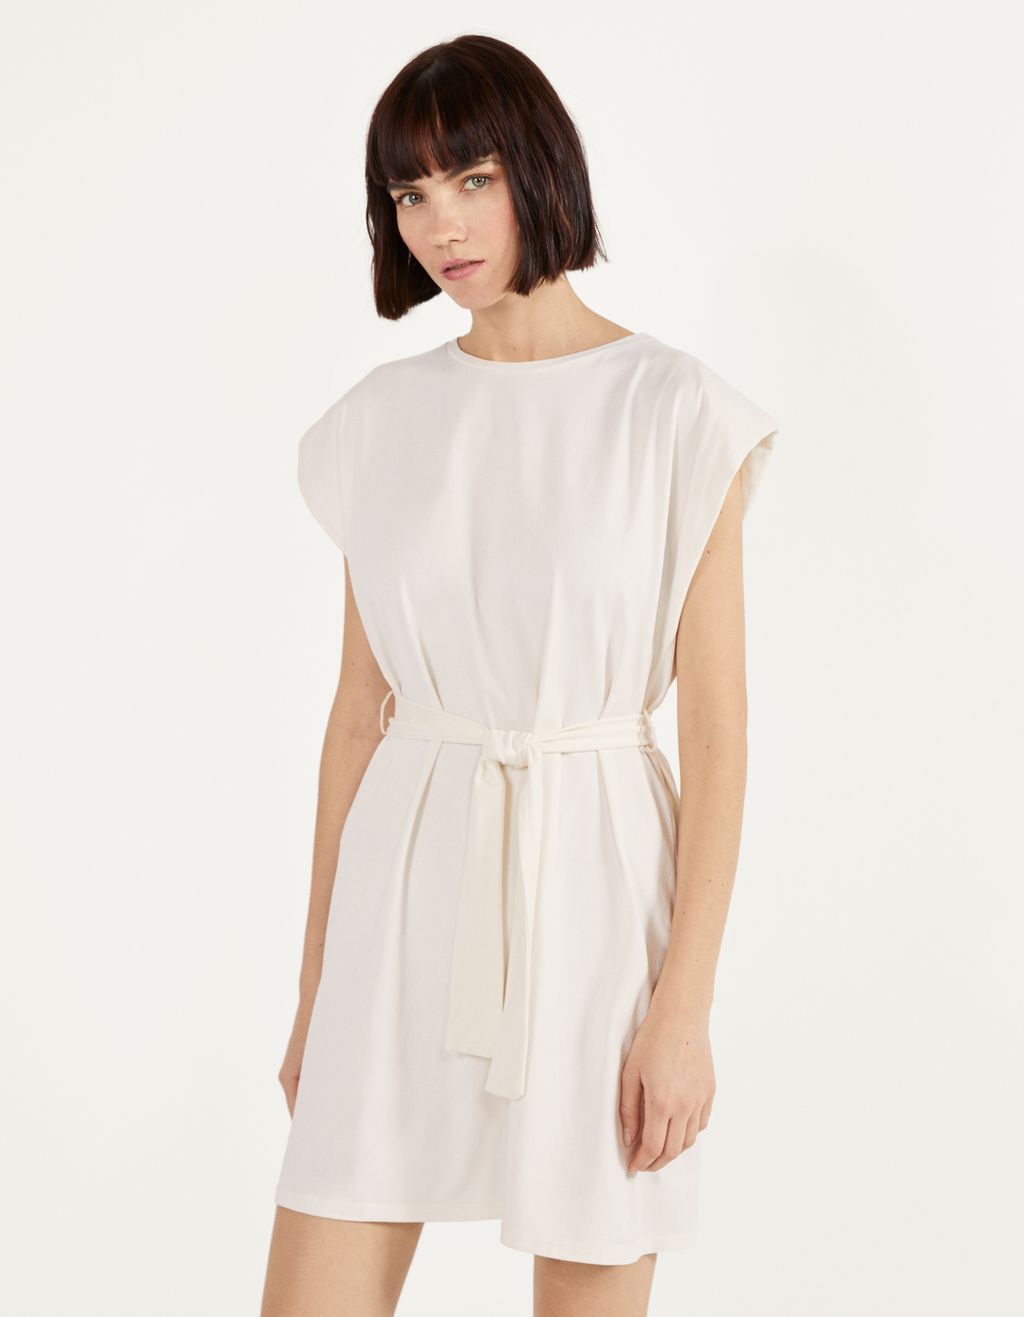 Plush dress with shoulder pads